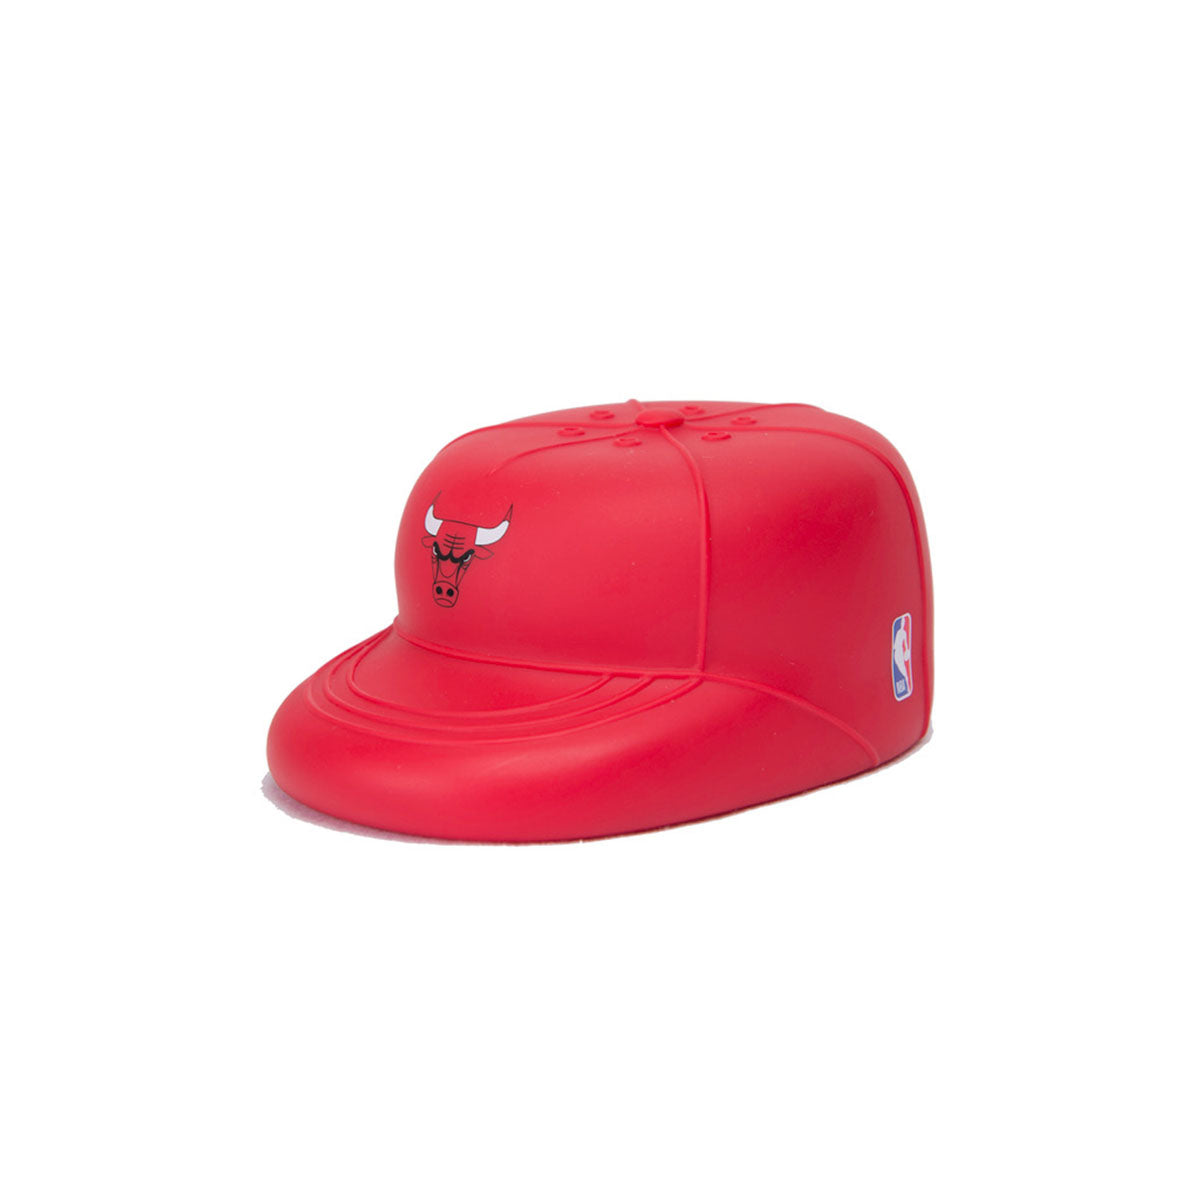 Nap Cap - NBA - Chicago Bulls - PlayCap Chew Toy